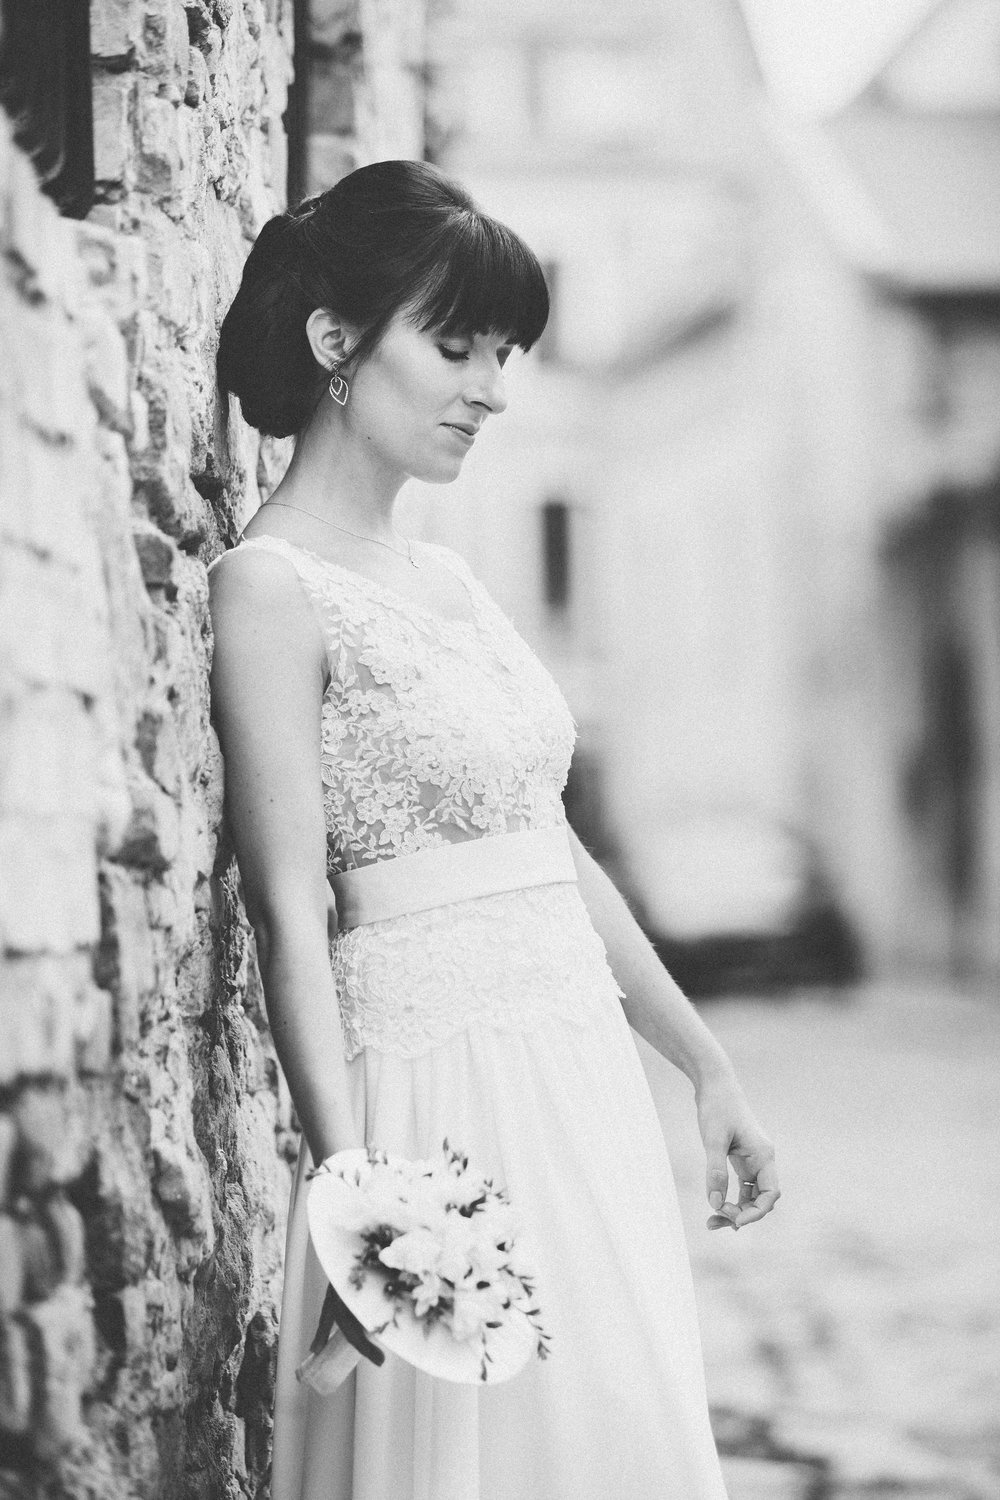 destination-wedding-photographer-bratislava-slovakia-europe-portrait-session-bride-bw-romantic.jpg